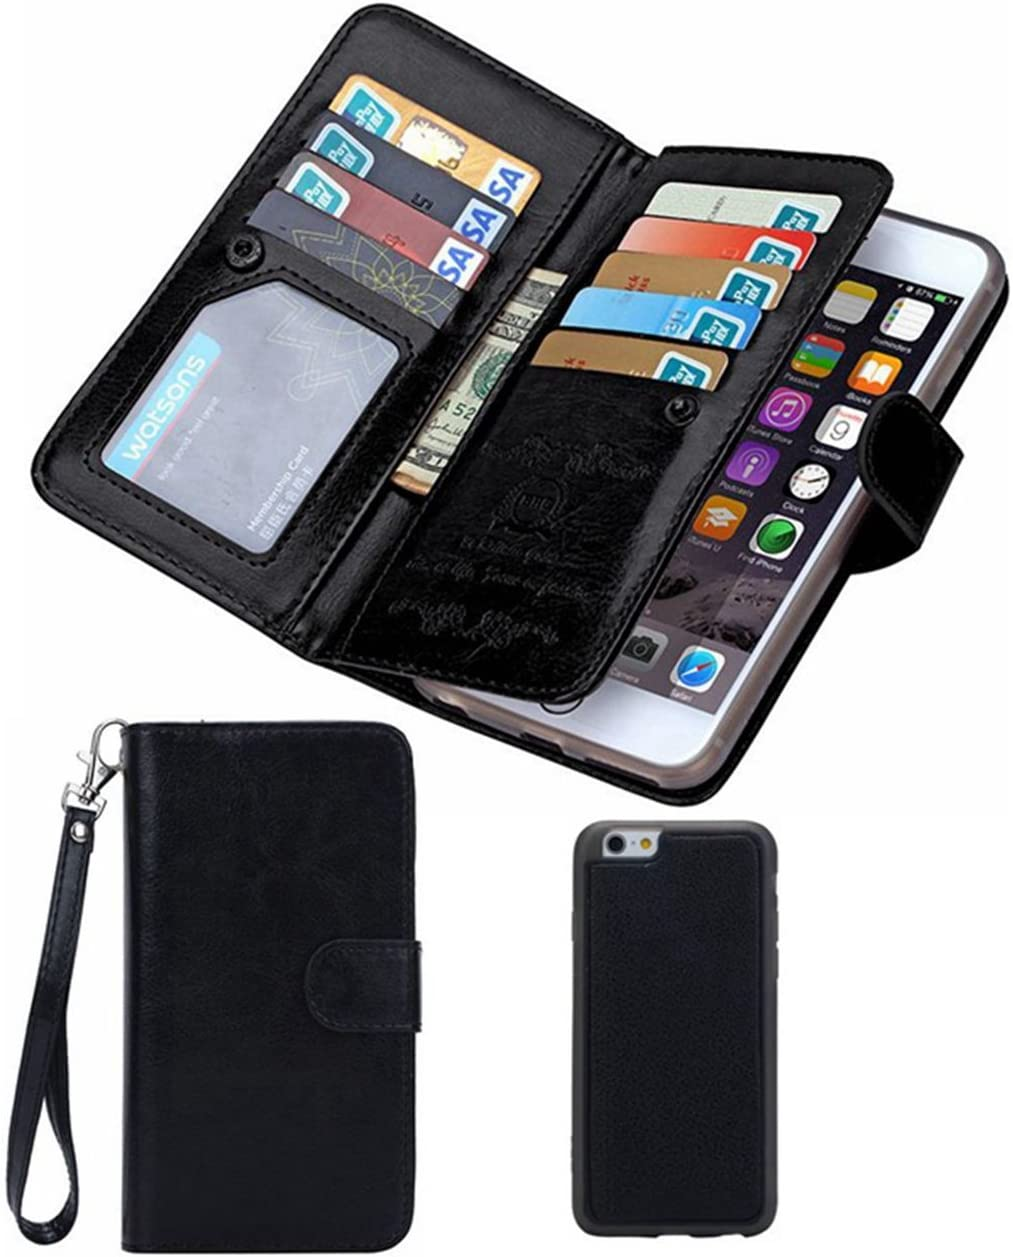 HYSJY iPhone 5S/SE Wallet Case, Magnetic Detachable PU Leather Wallet Purse for Women Men with Strap, Credit Card Slots, Card Holer,Flip Slim Cover Case Fit iPhone 5/5S/SE (Card-Black)